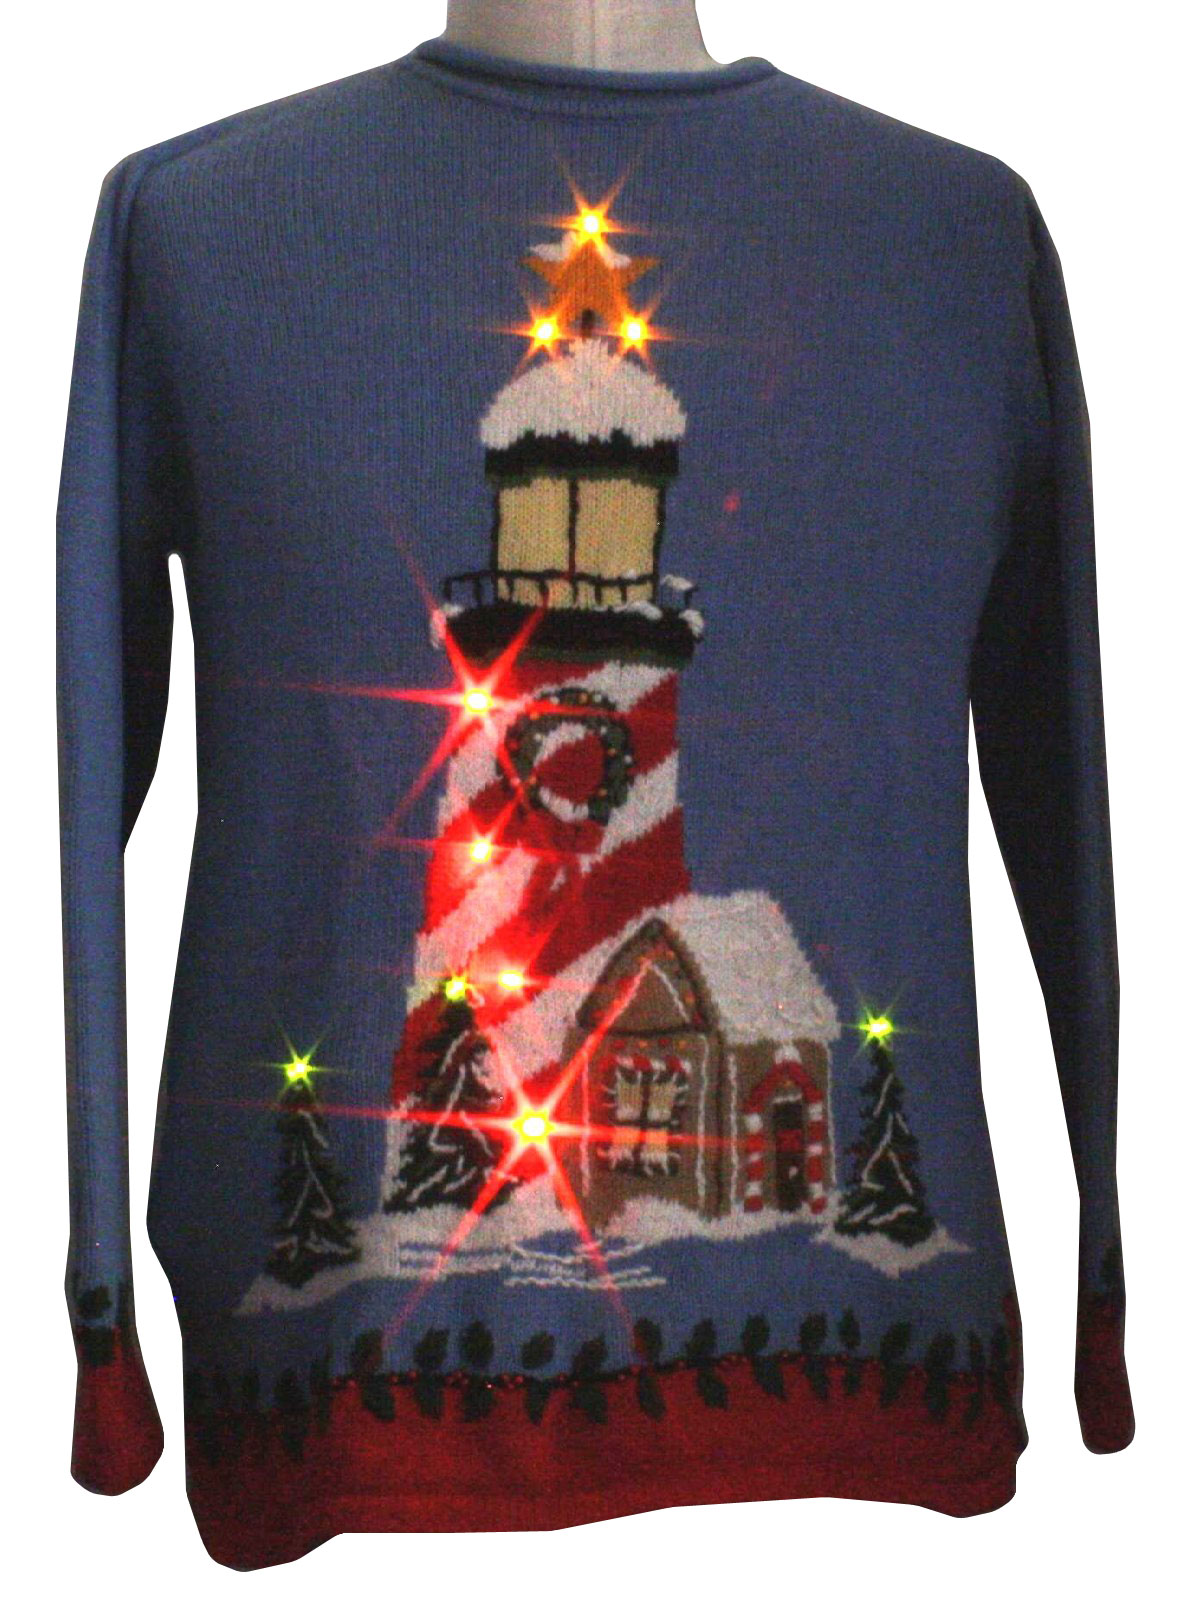 Lightup Ugly Christmas Sweater: -The Quacker Factory- Unisex baby ...